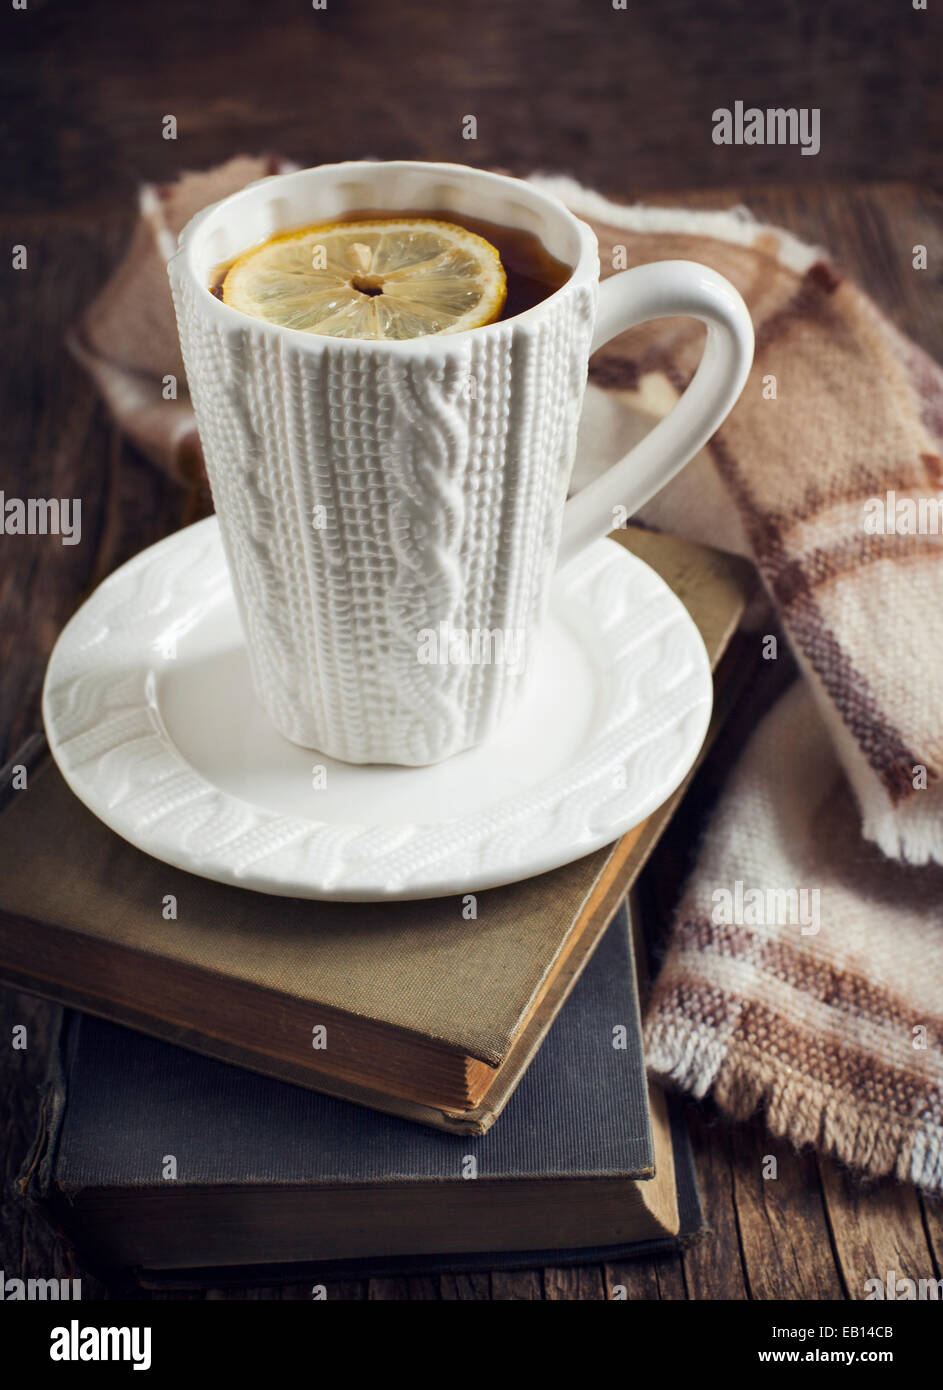 Cup of hot tea with lemon, book and scarf on wooden table. - Stock Image